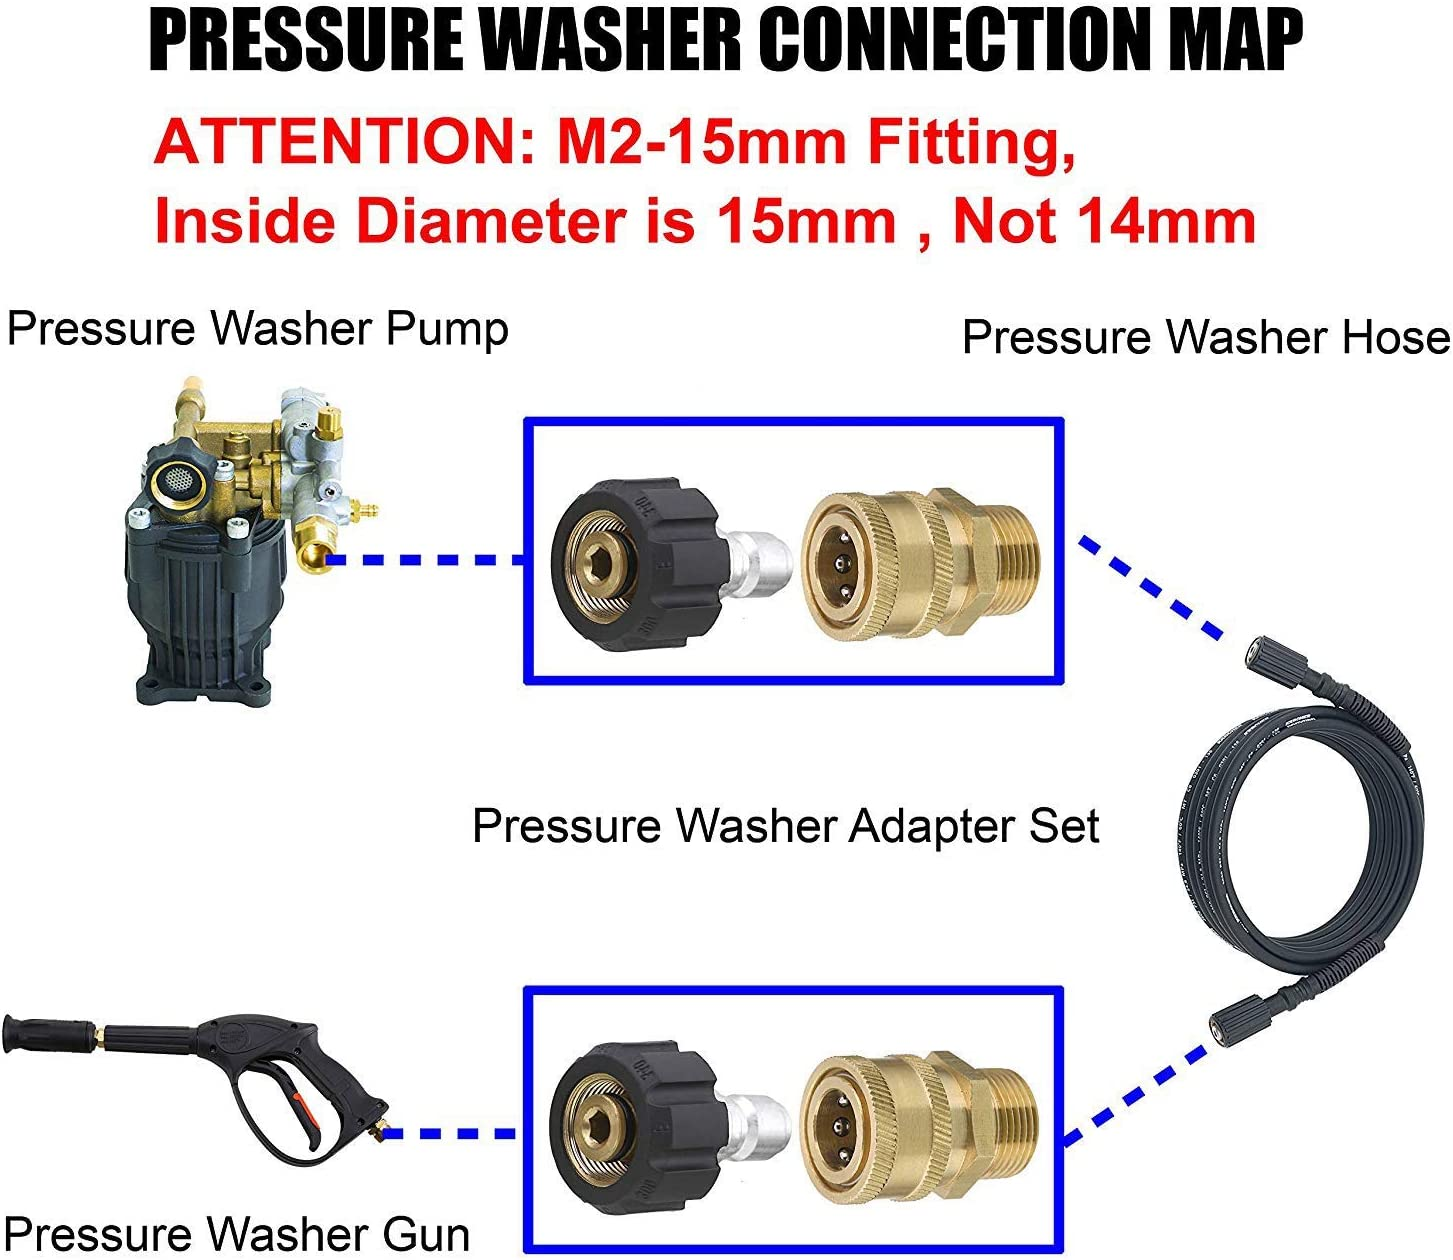 5000 Psi TOOGOO Pressure Washer Adapter Set Metric M22 15Mm Female Swivel to M22 Male Fitting Quick Connect Kit